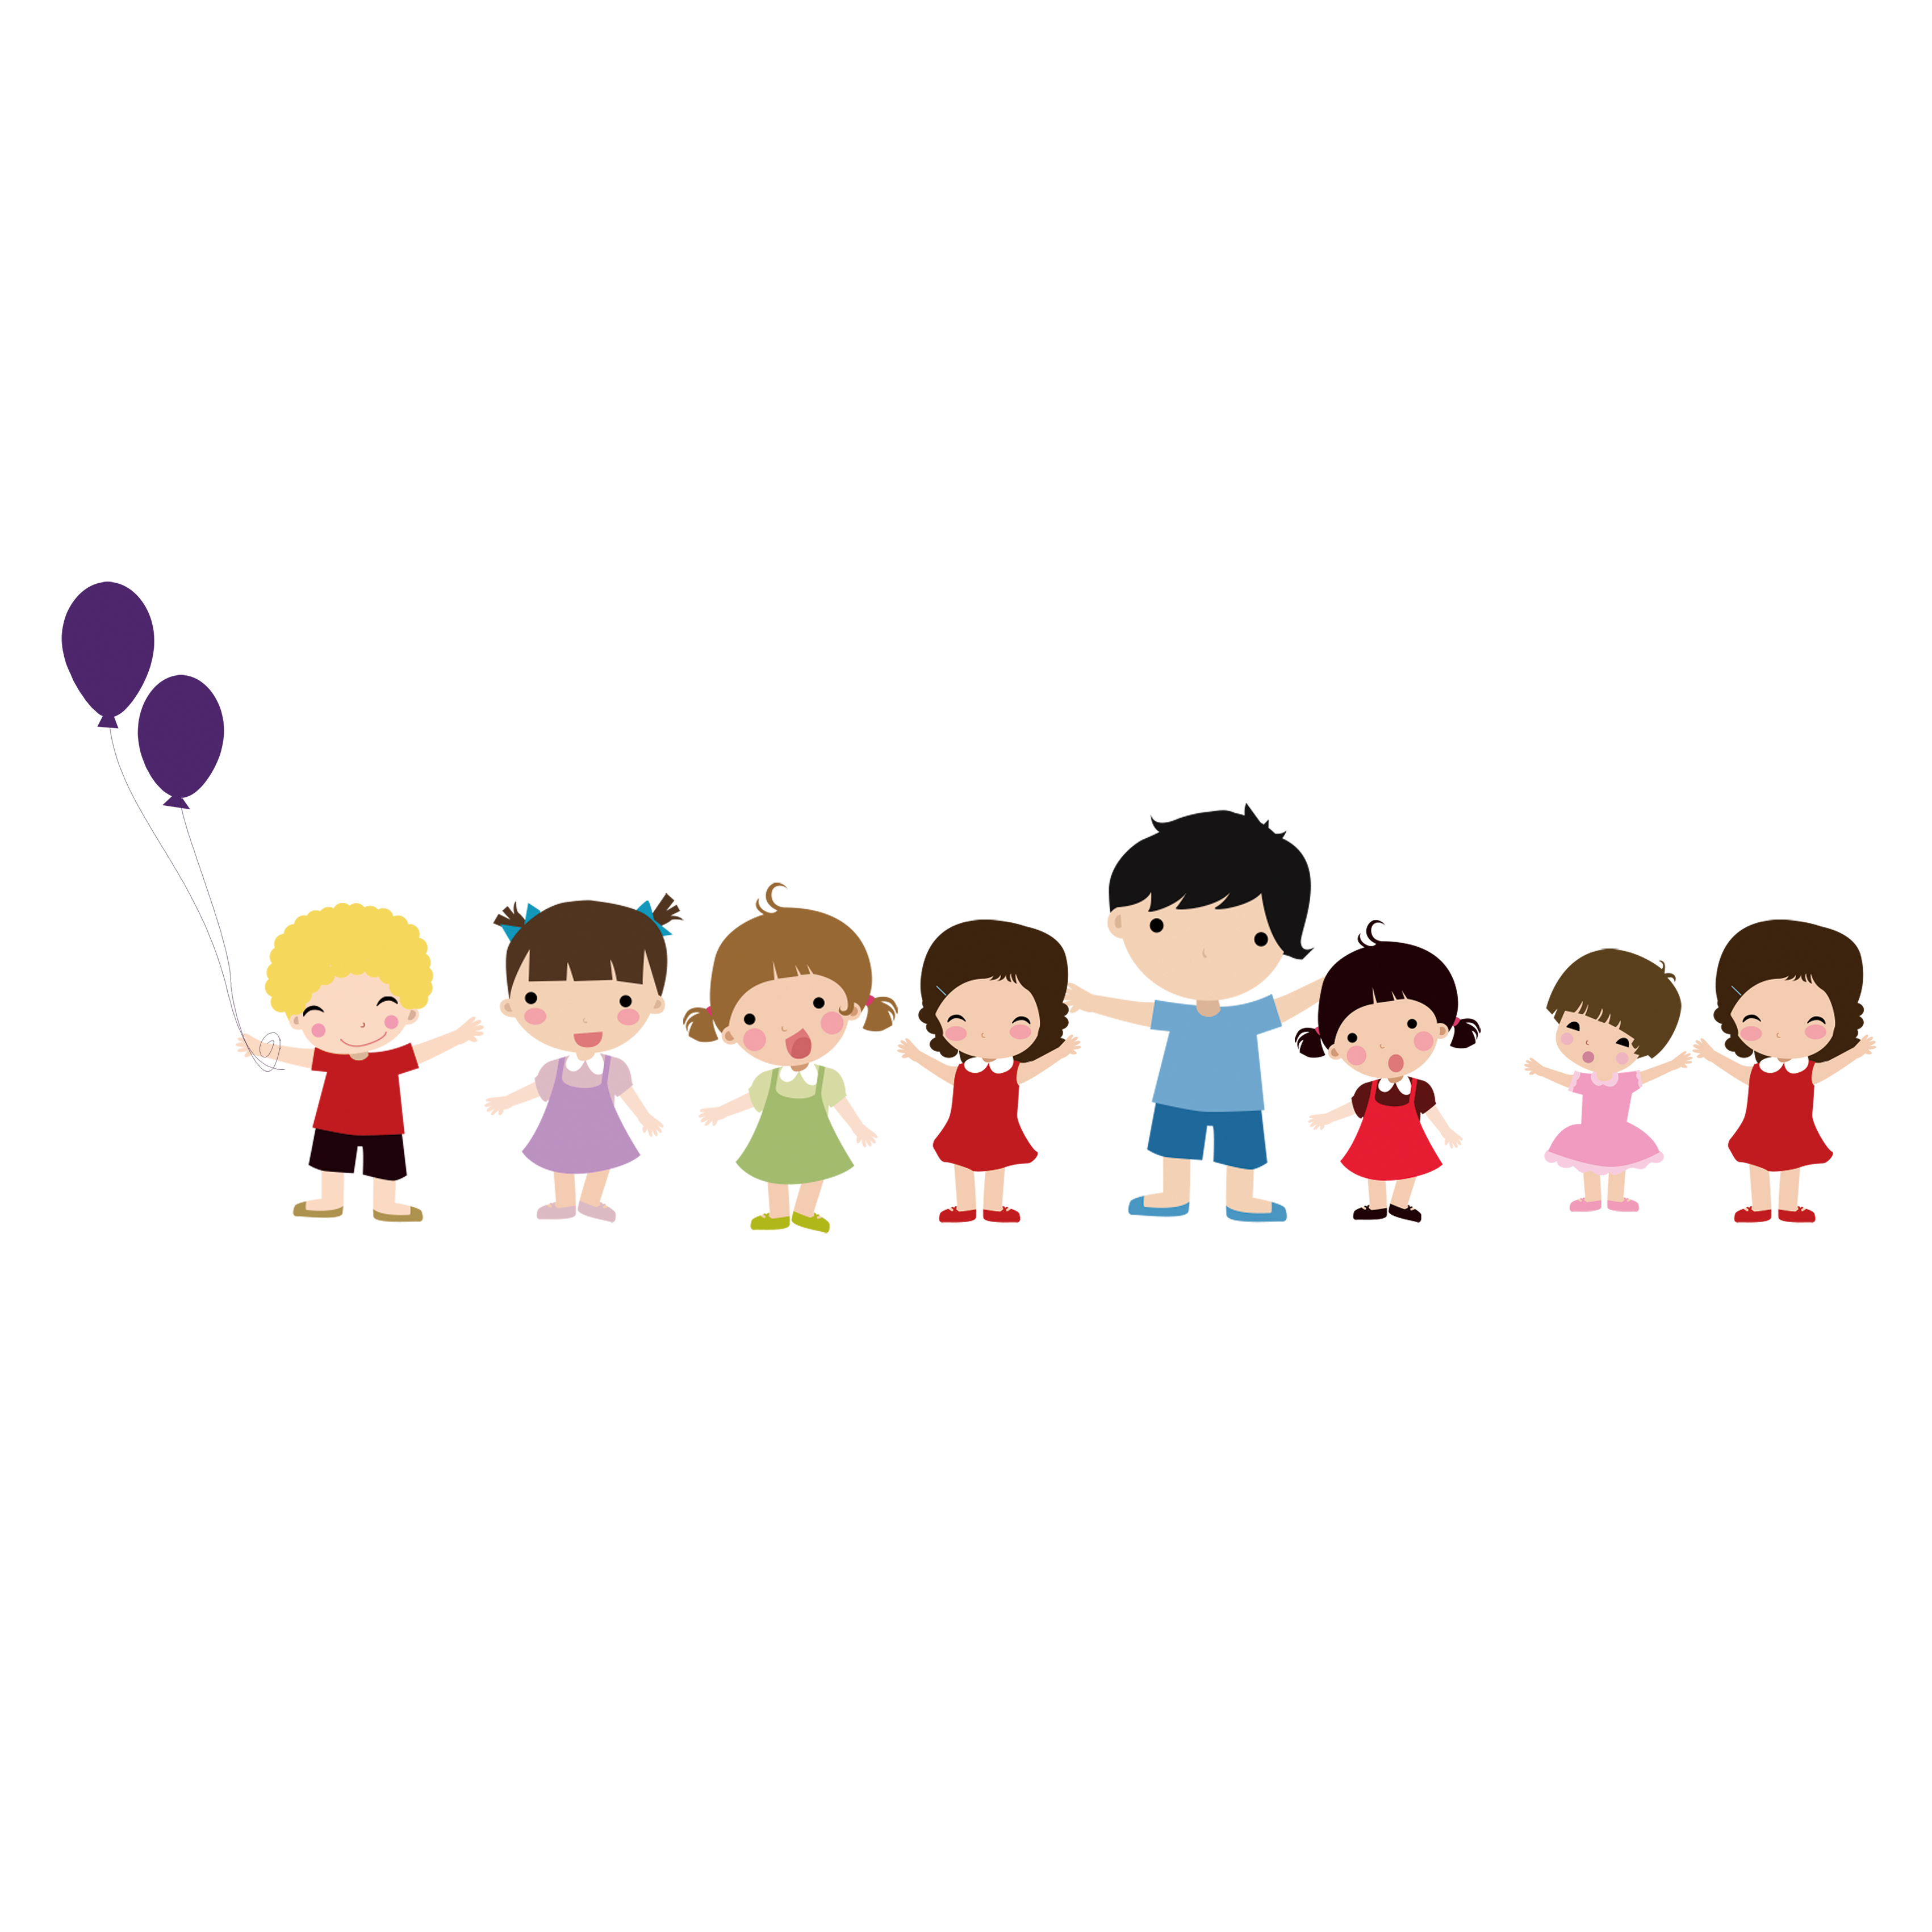 Children S Play Creative Childrens Day Free Png Hq Kids Playing Free Png Childrens